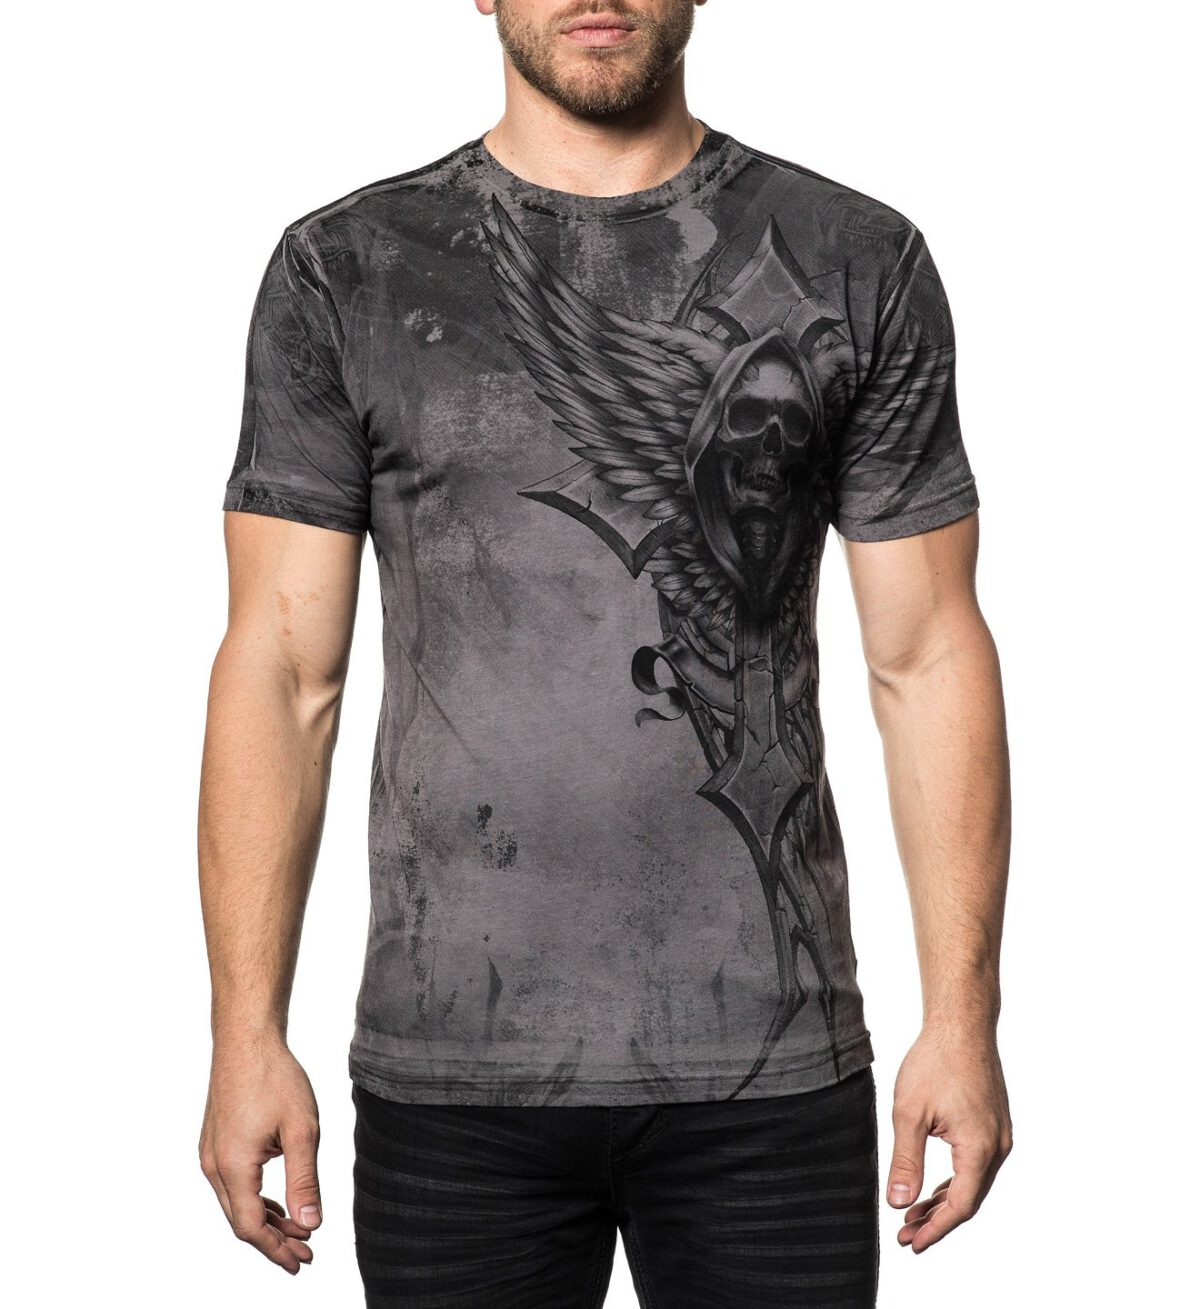 Xtreme Couture T-Shirt X-1757 grey/black